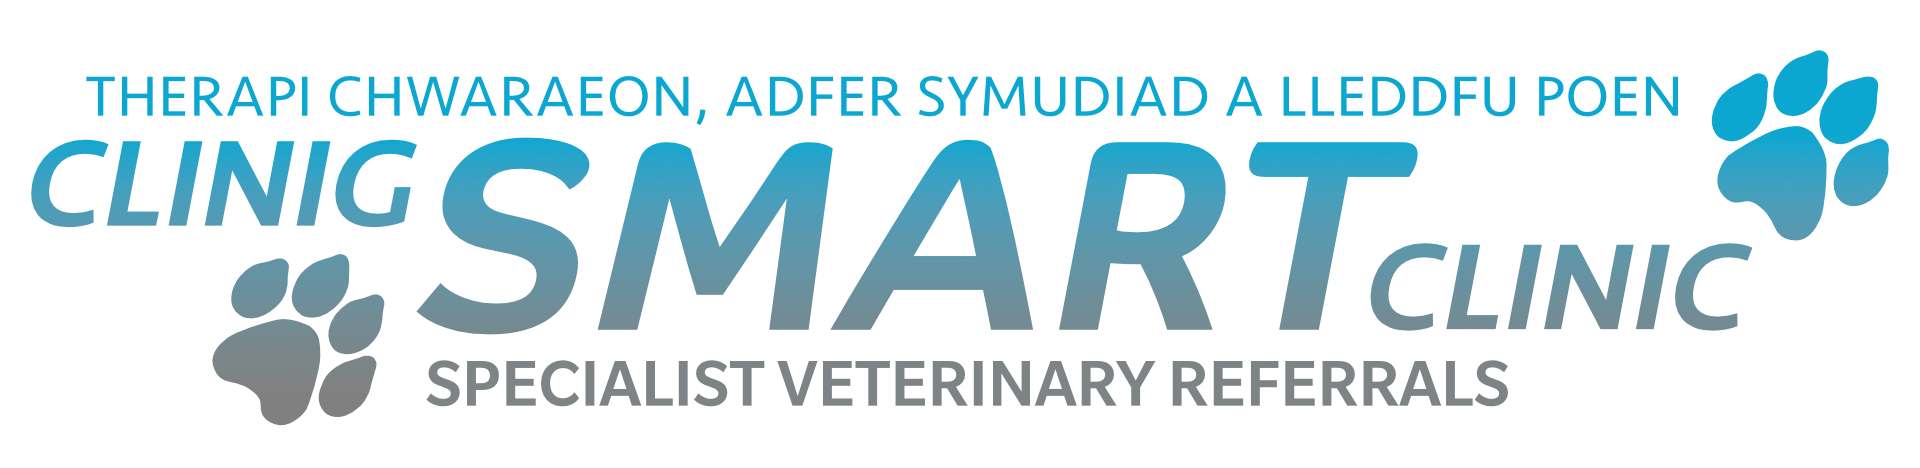 SMART Specialist Veterinary Referrals